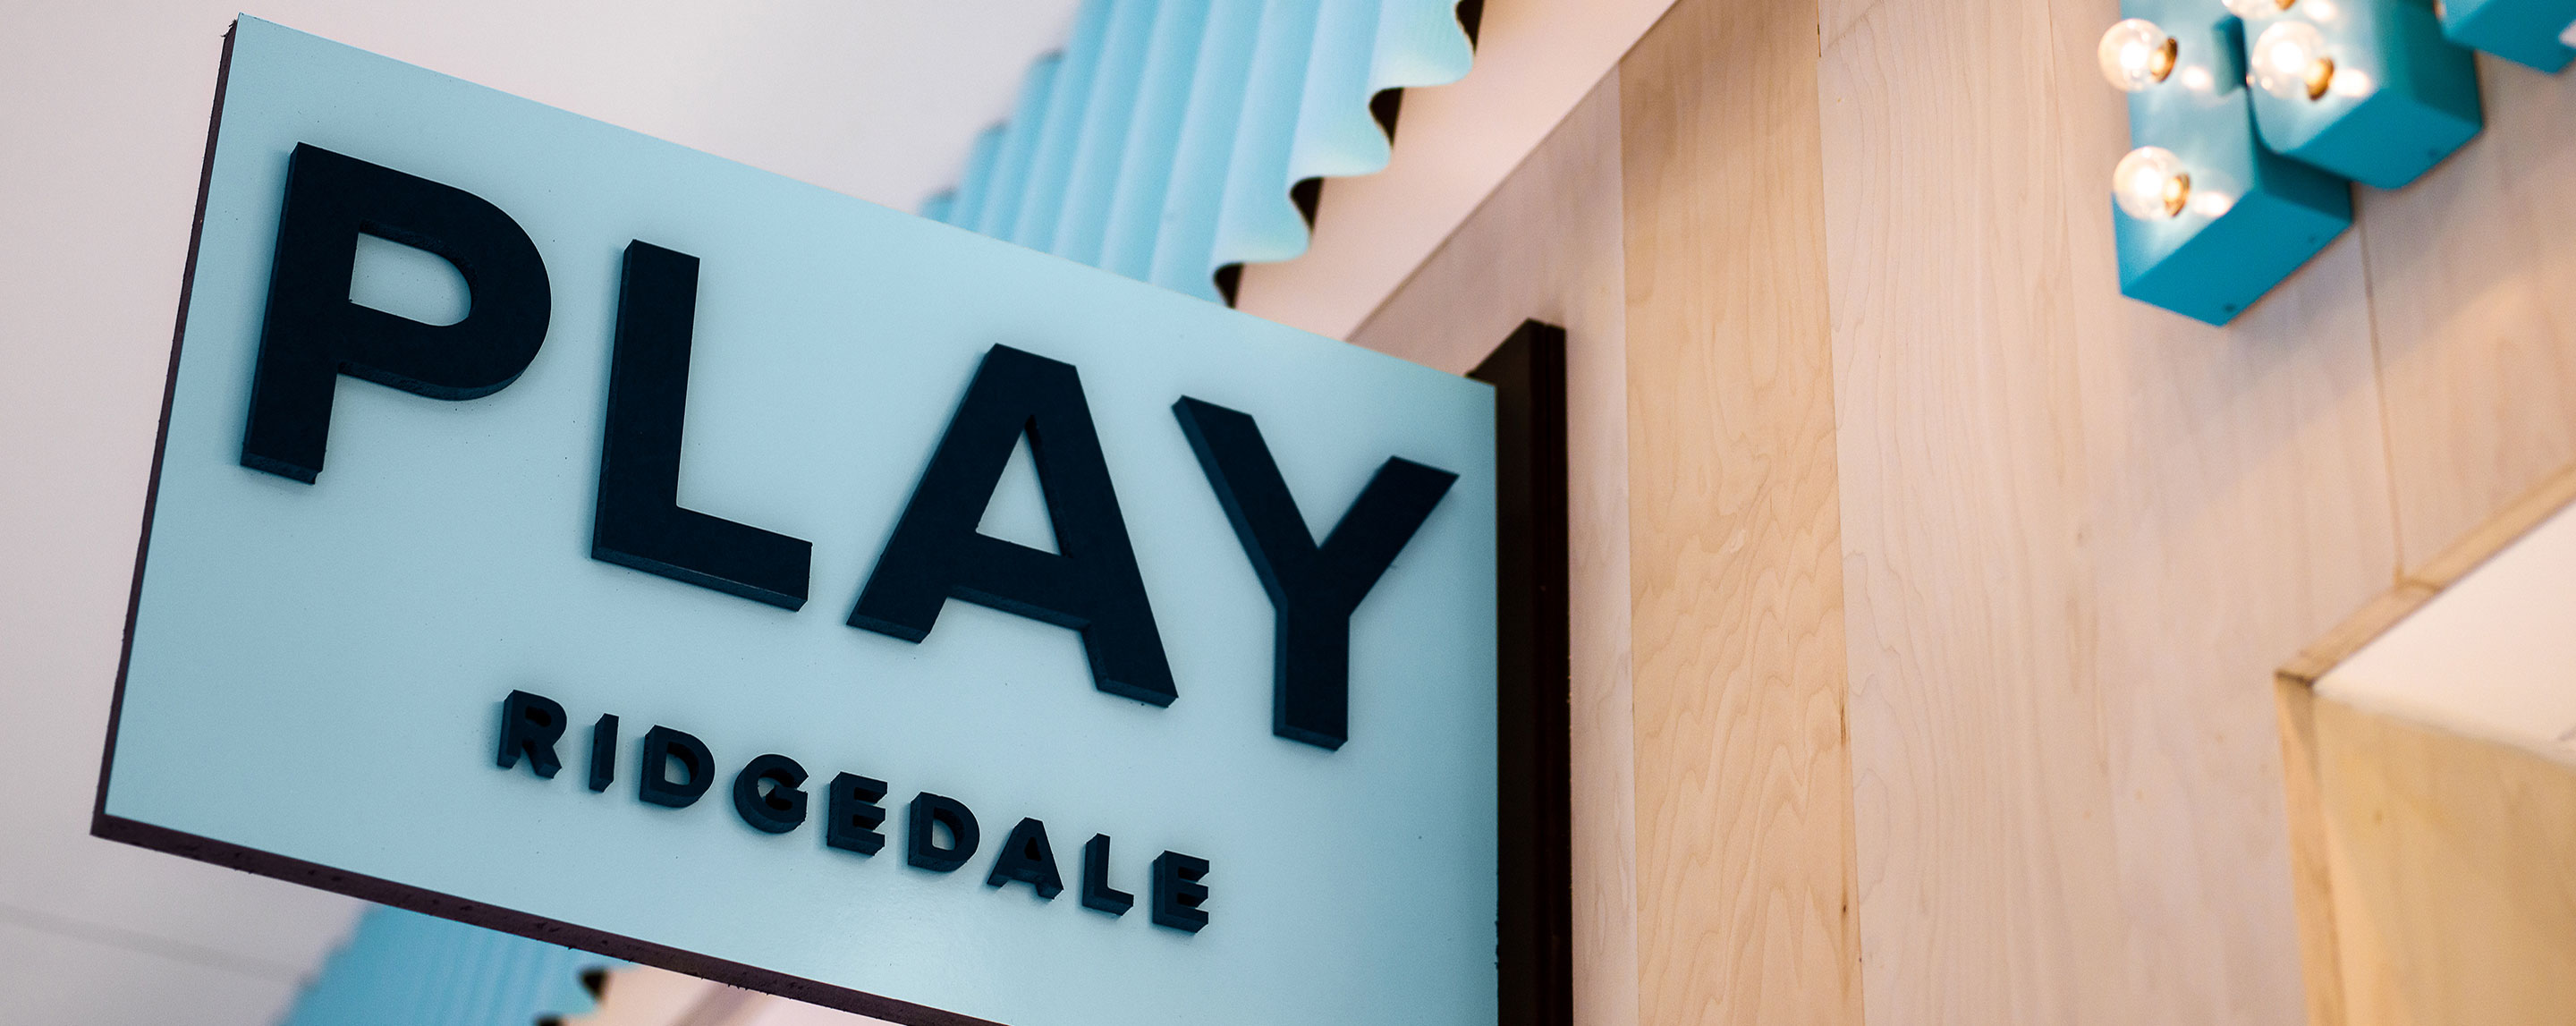 "An eggshell blue sign says ""Play Ridgedale"" in black letters in front of the Ridgedale Play center at Ridgedale Center in Minnetonka, MN."